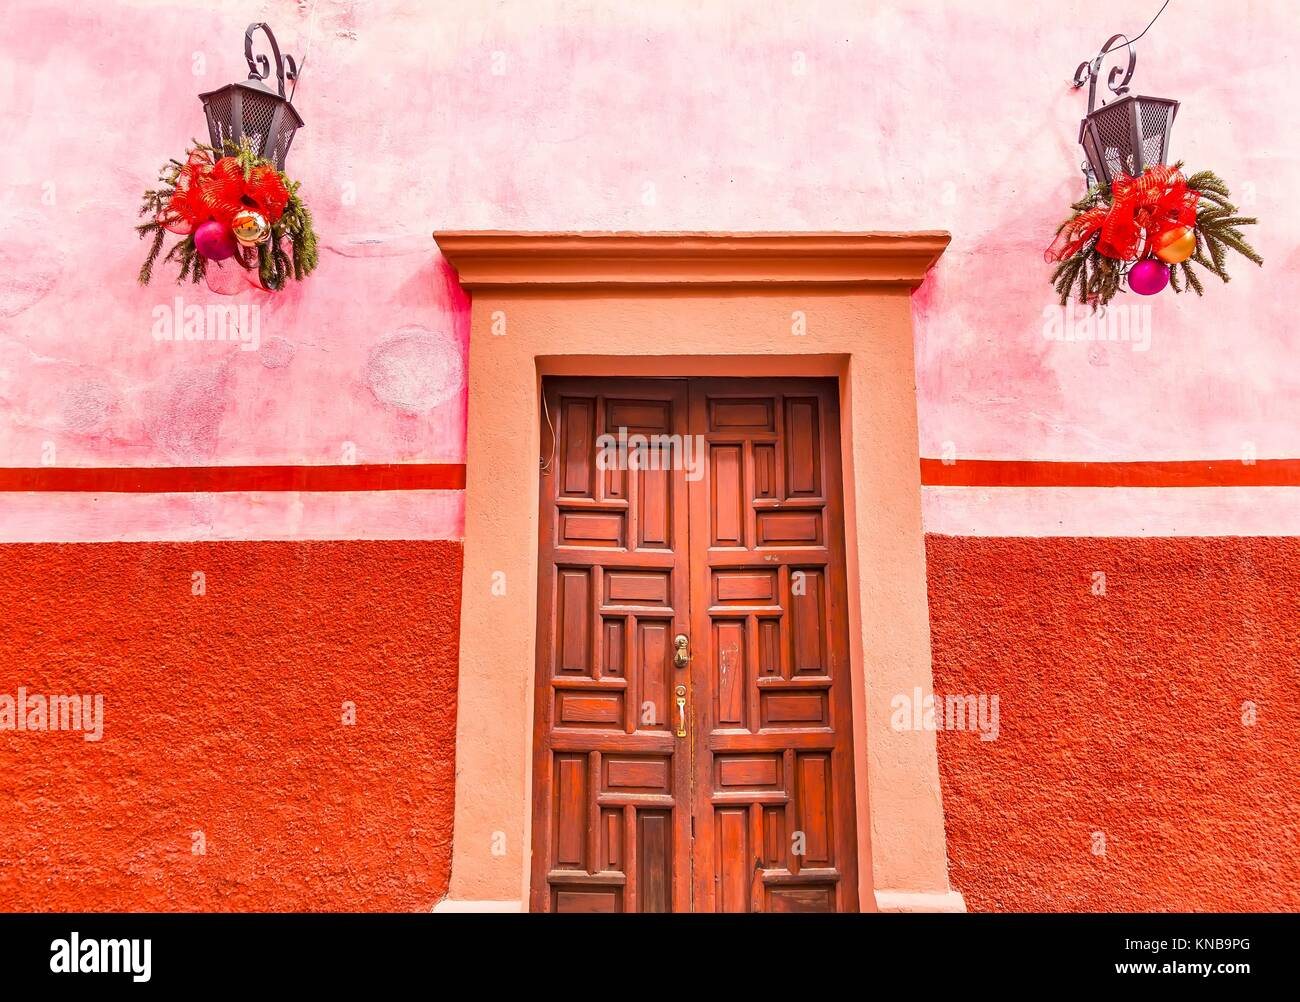 Pink Red Wall Brown Door Christmas Decorations San Miguel de Allende Mexico. - Stock Image